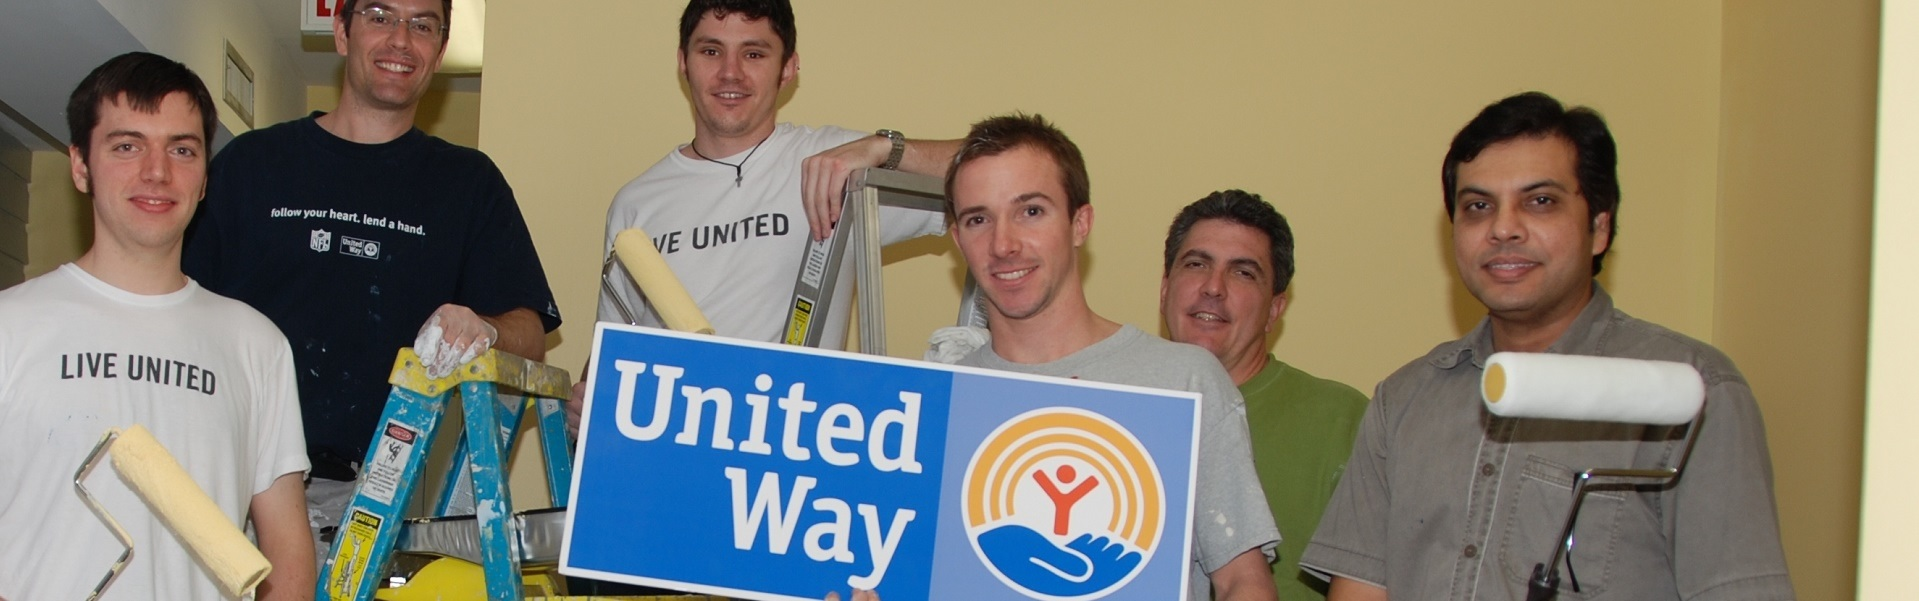 United Way of Gentry Arkansas